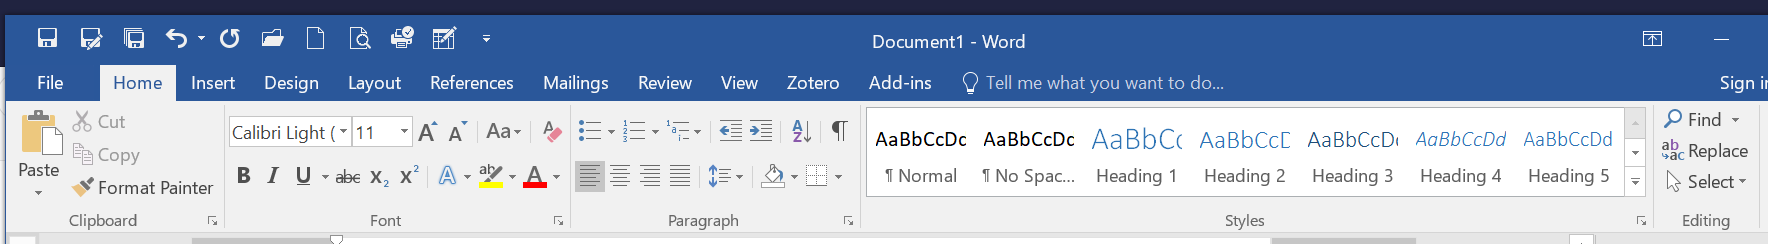 Word 2016 home ribbon to show where to select headings.